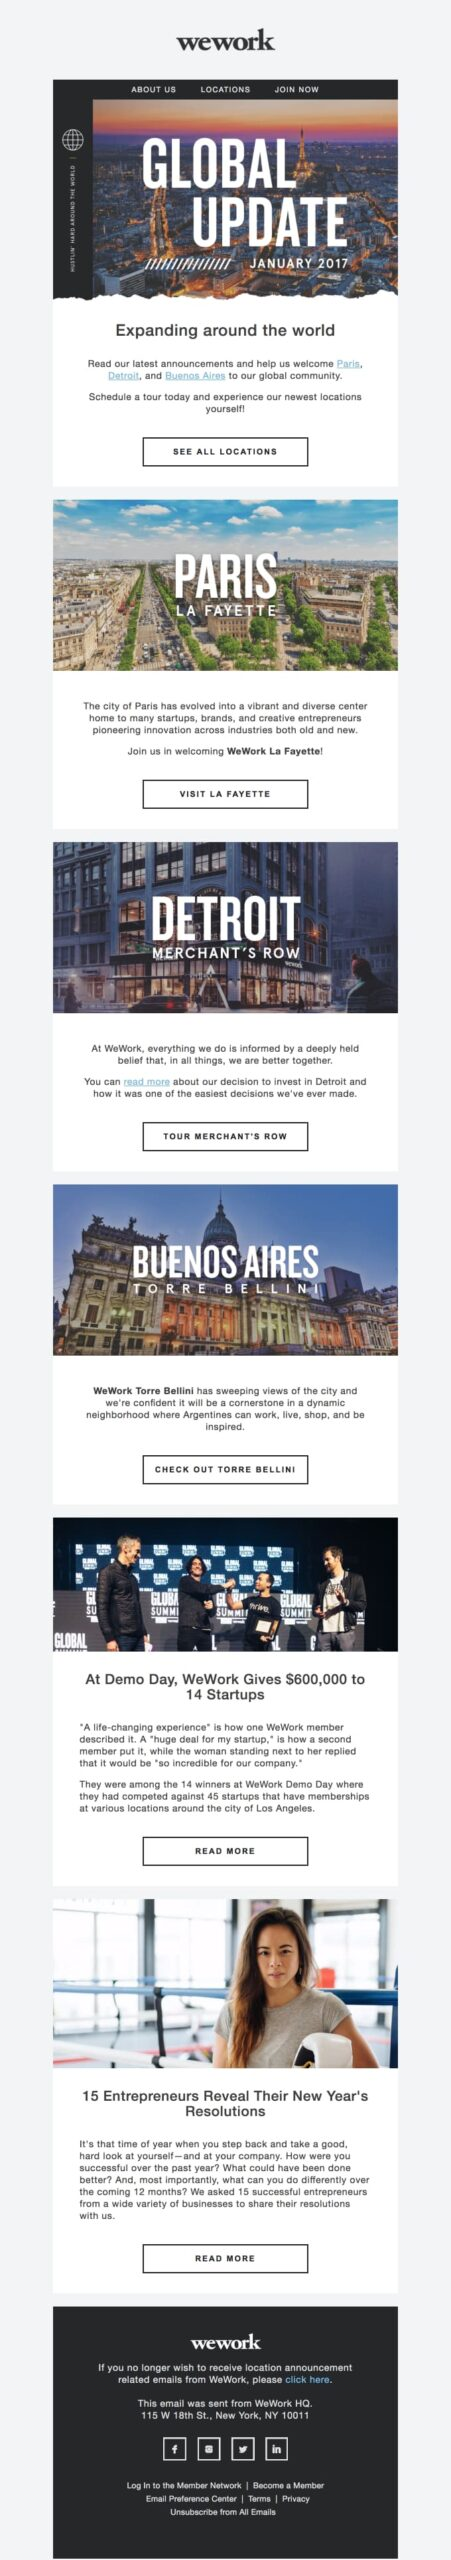 Email announcing new locations being opened this year.